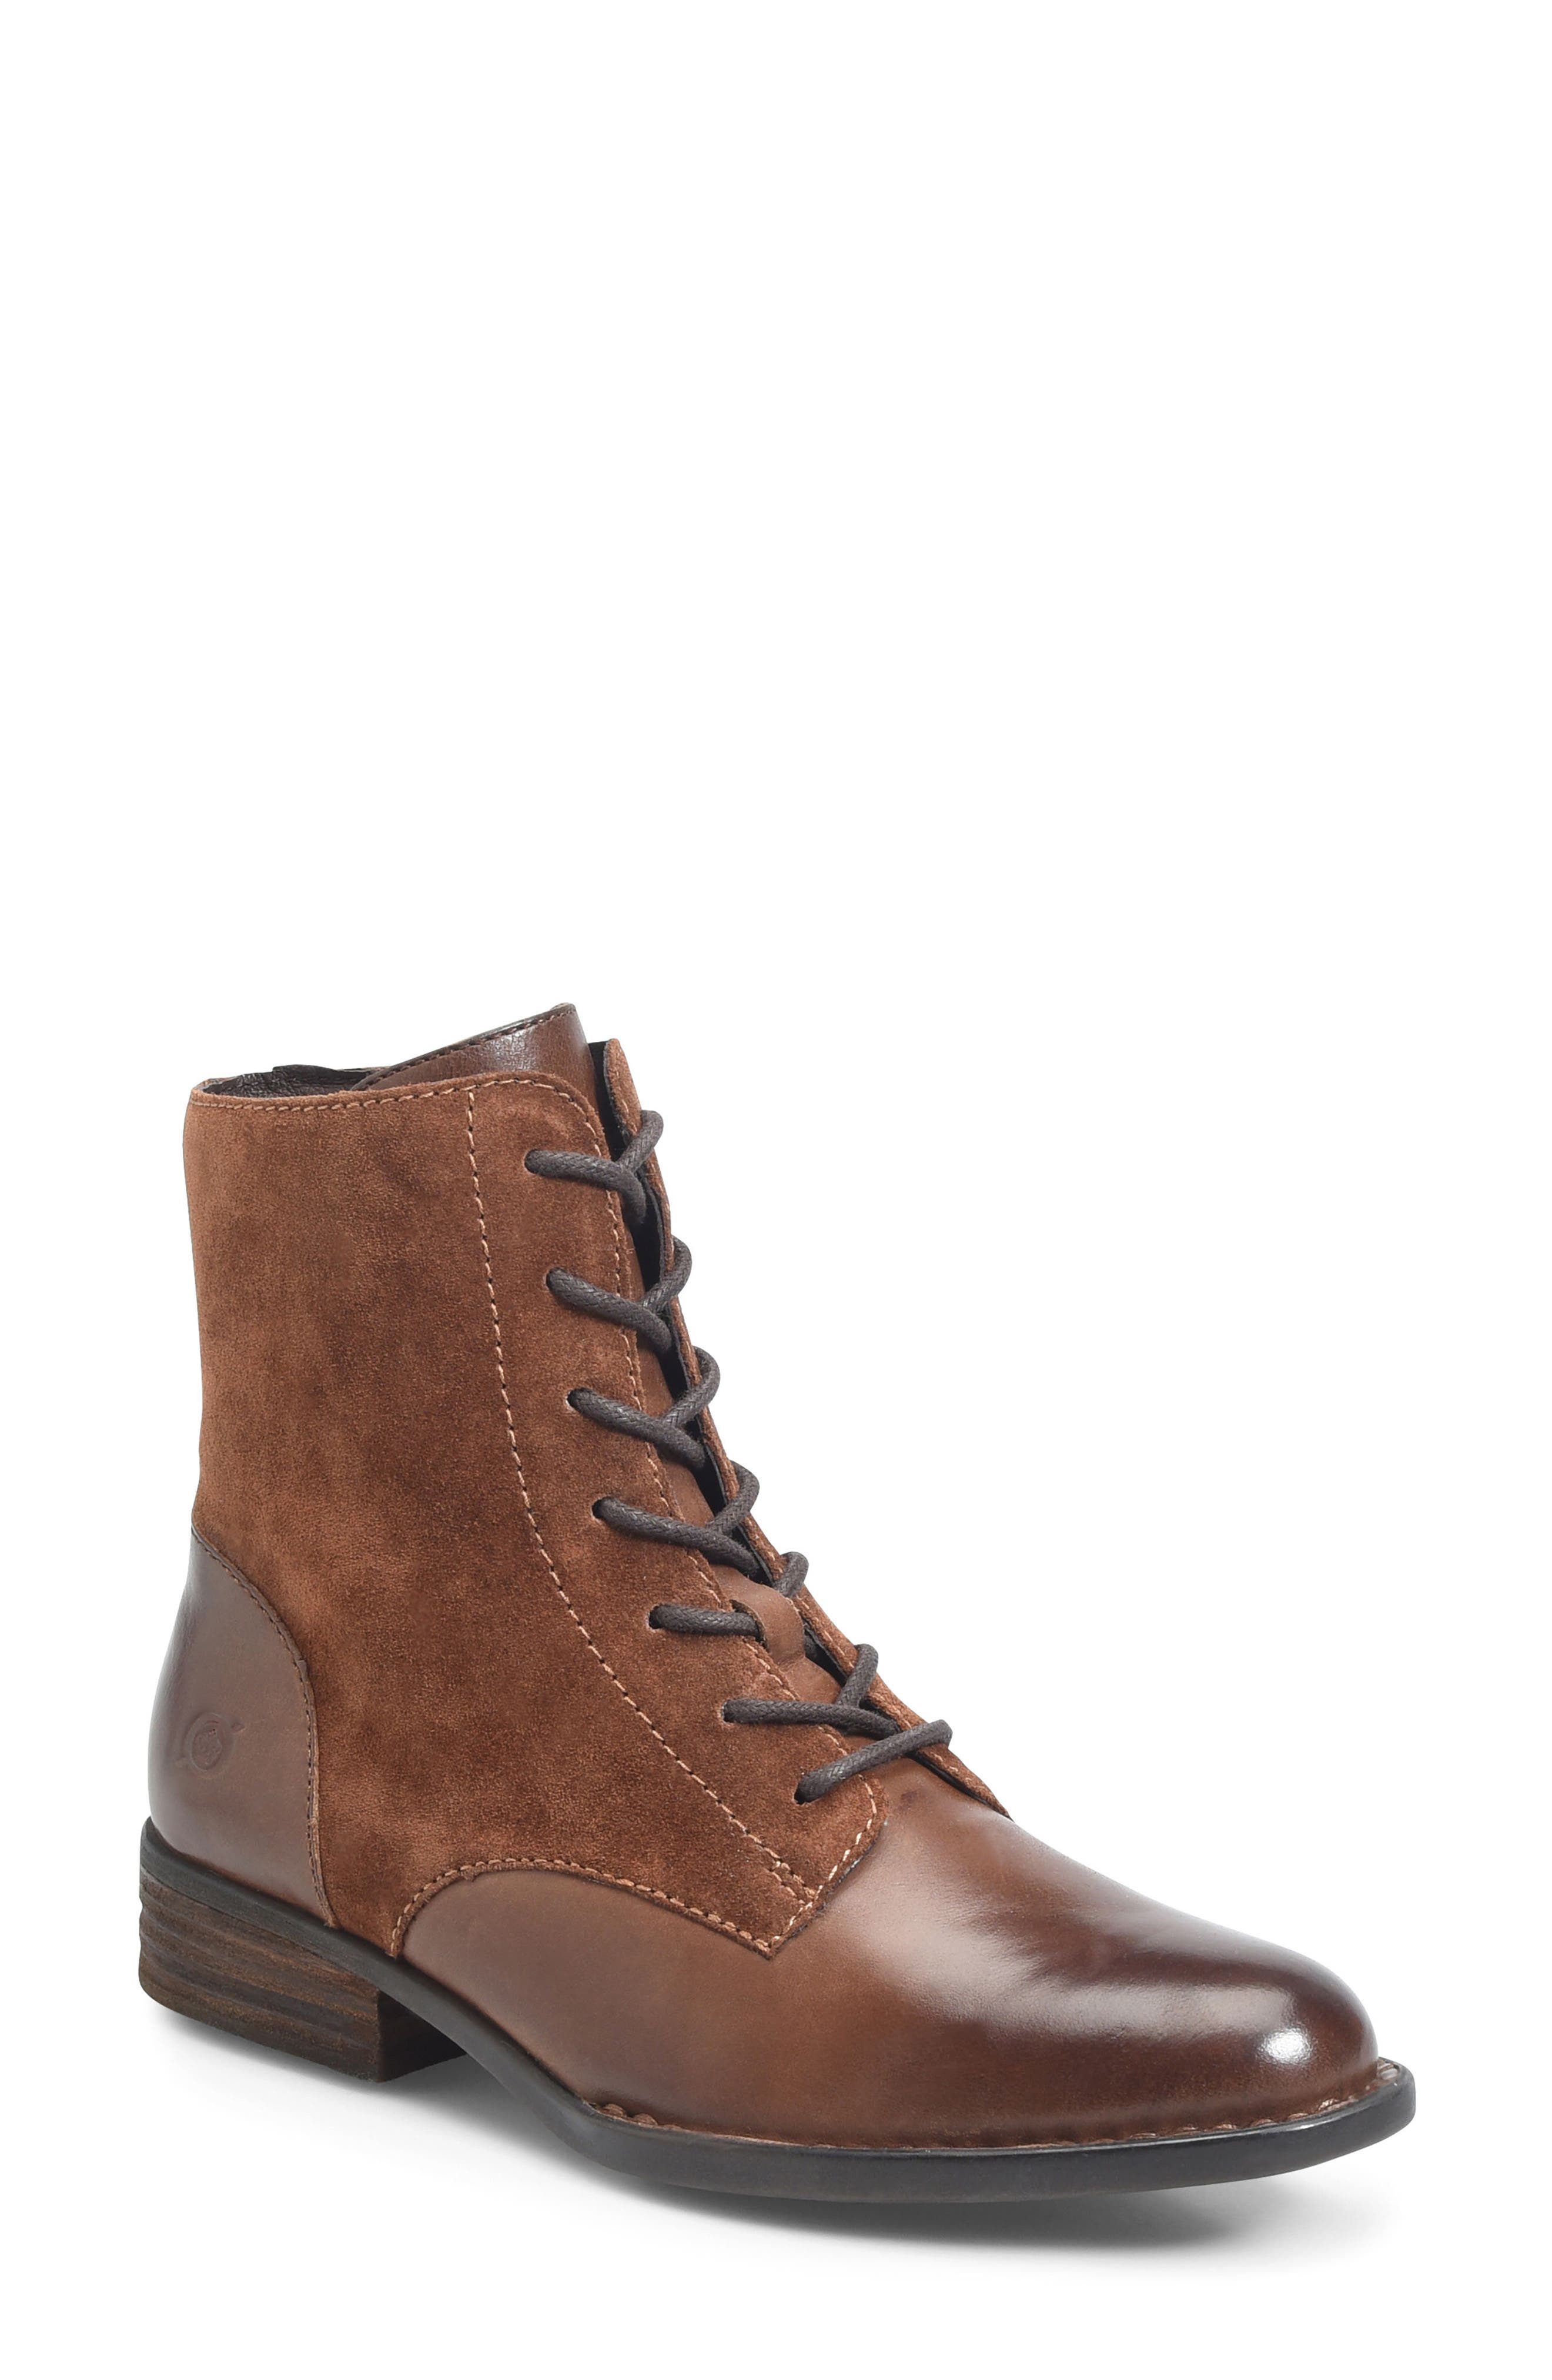 Clements Lace-Up Boot,                             Main thumbnail 1, color,                             Brown/ Rust Combo